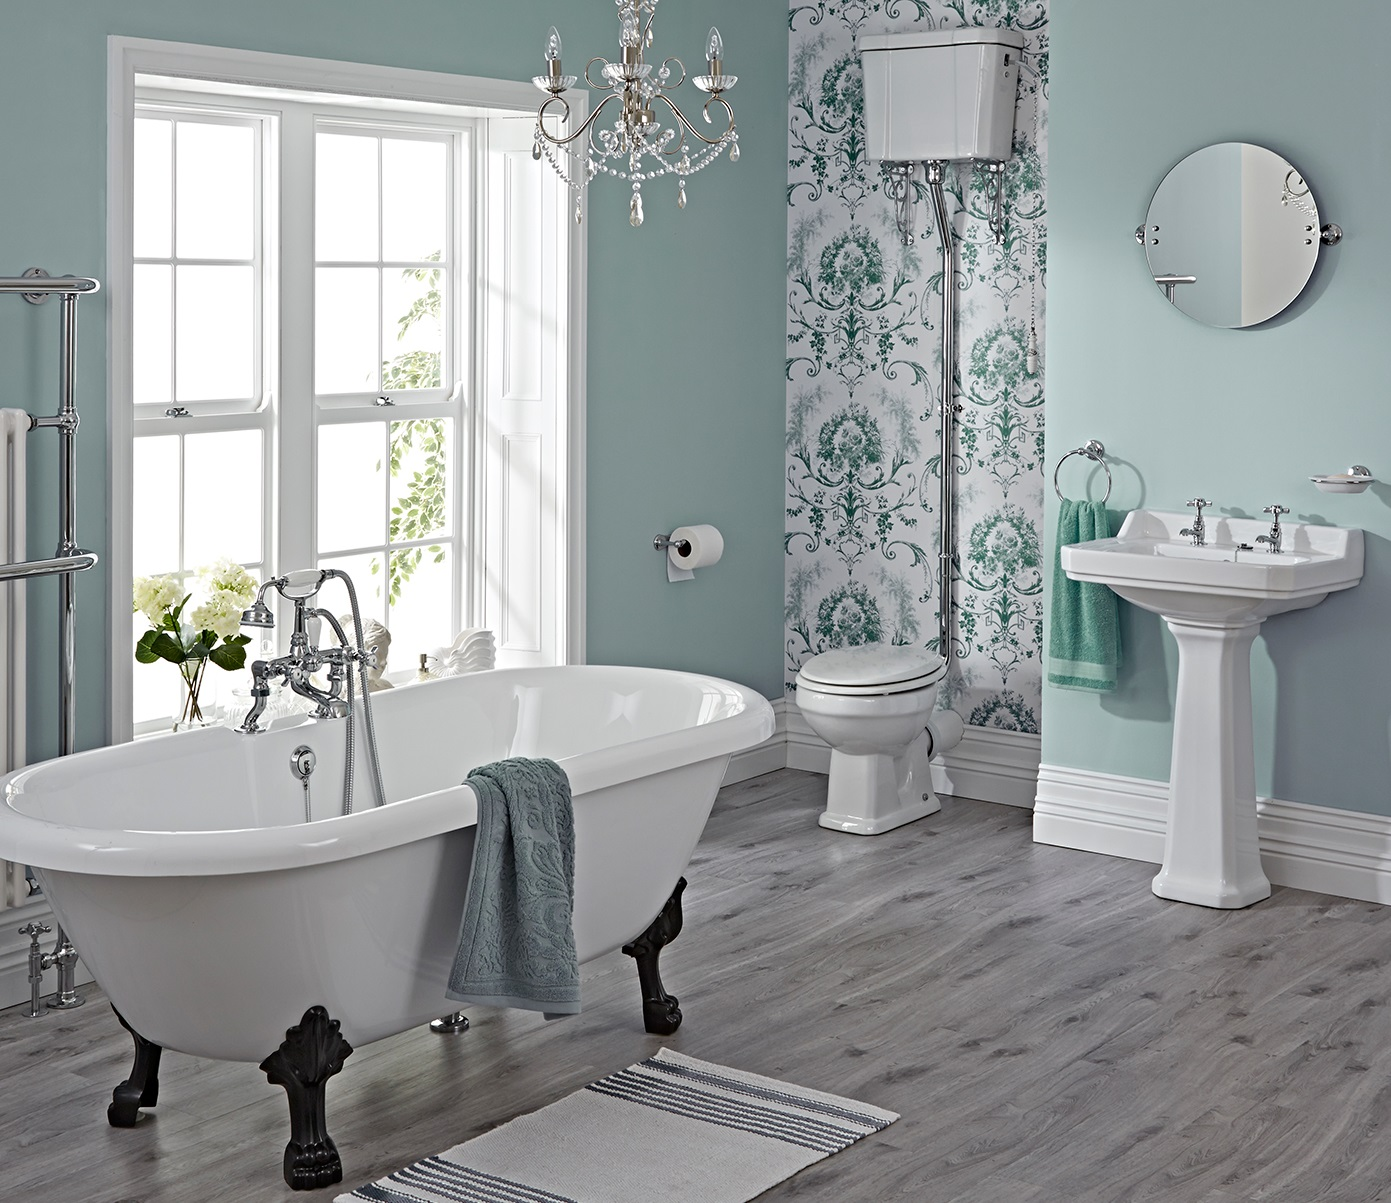 Bathroom Ideas: Create A Feeling Of Nostalgia